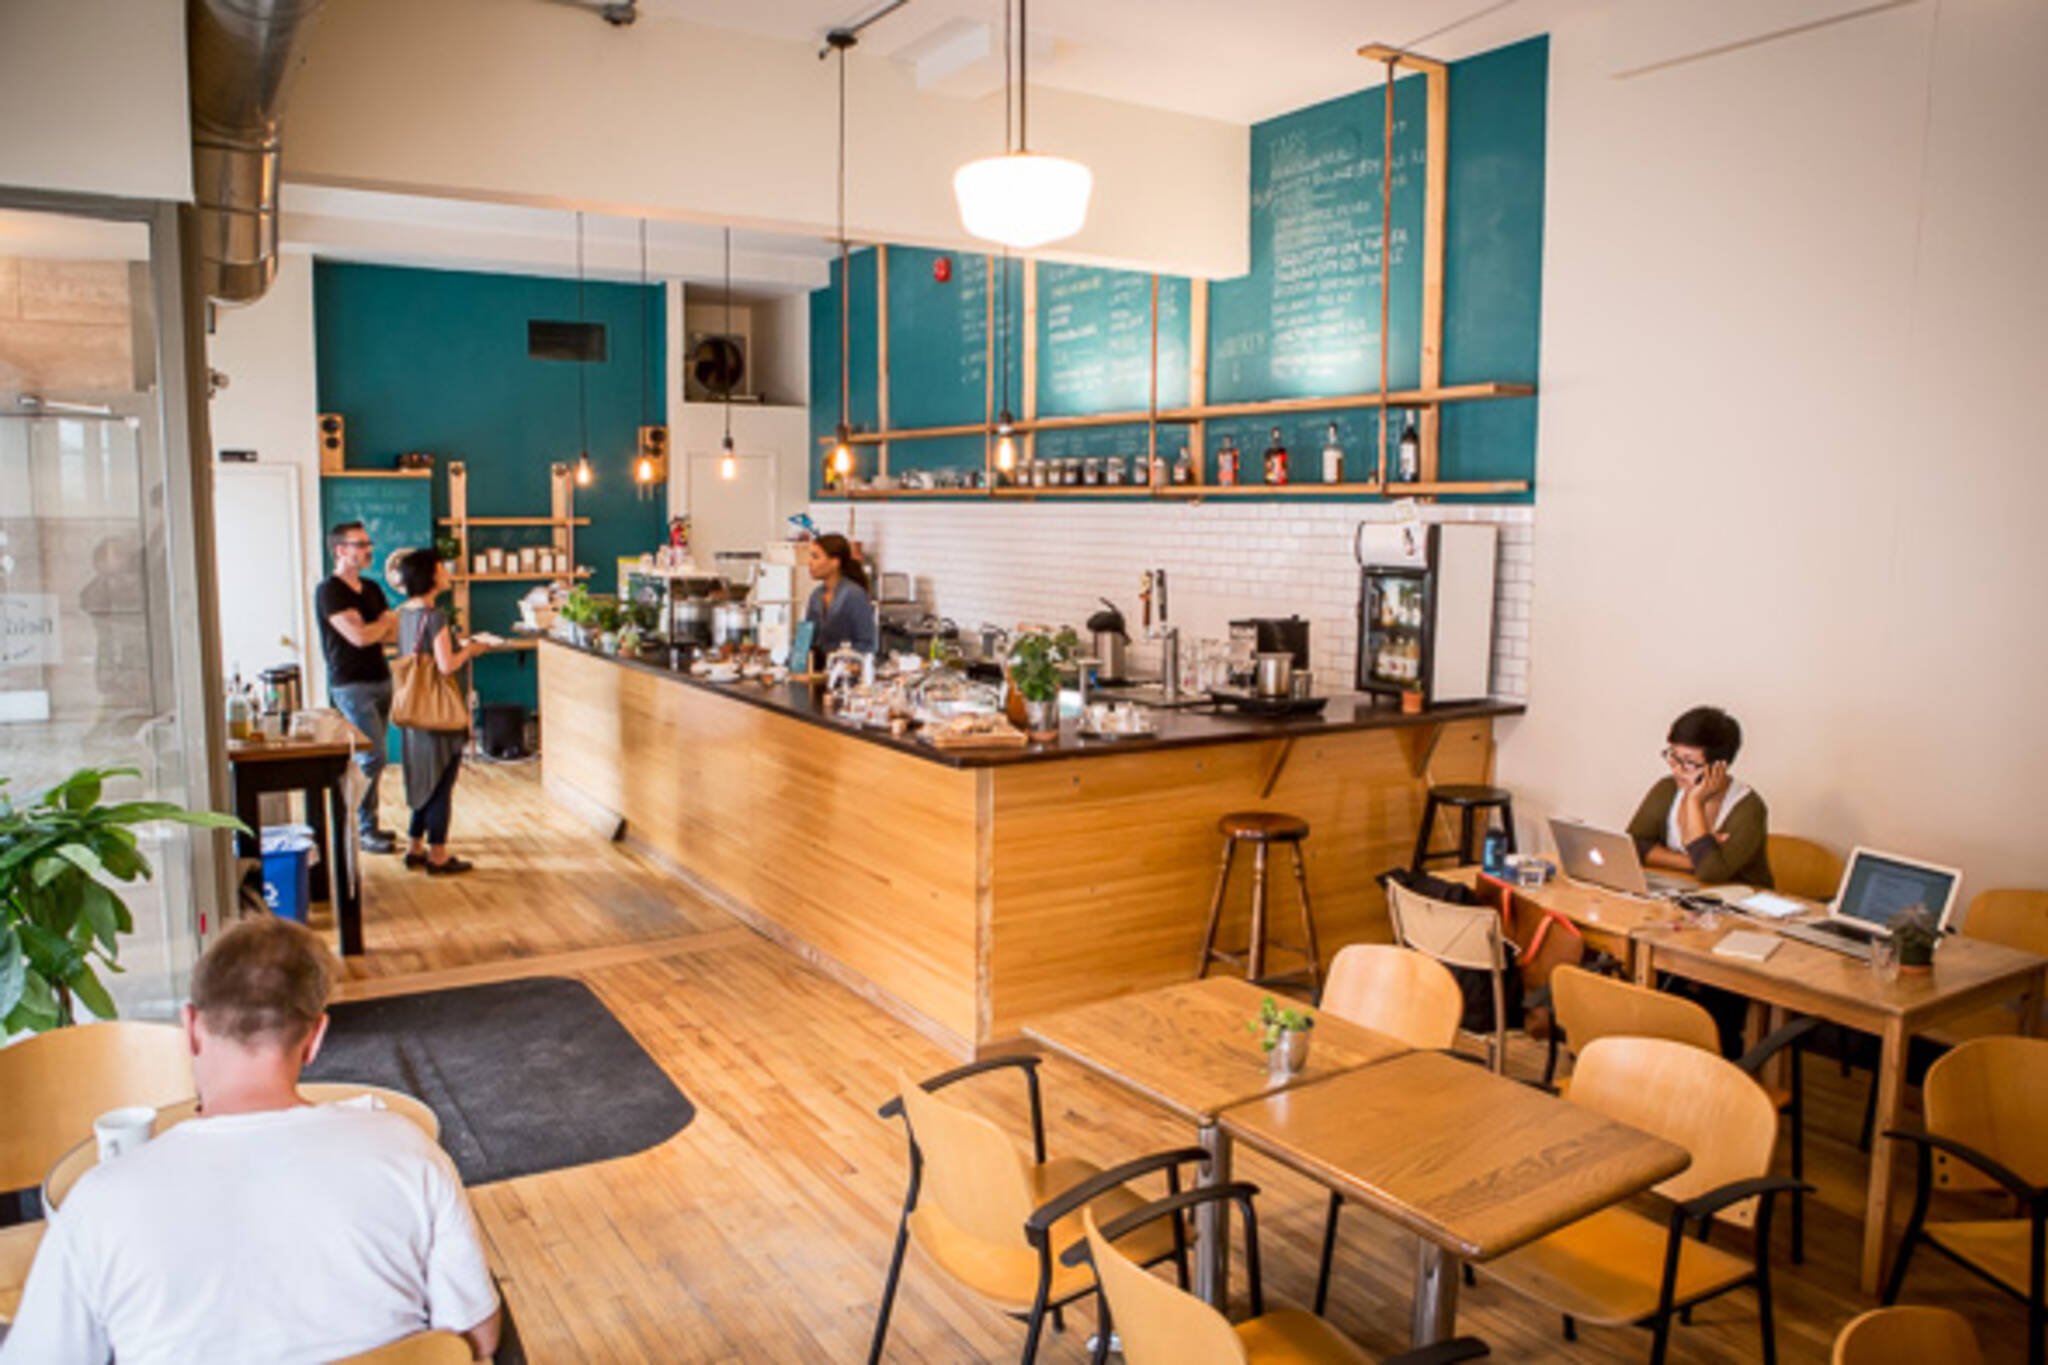 The Top 30 Cafes For Studying In Toronto By Neighbourhood